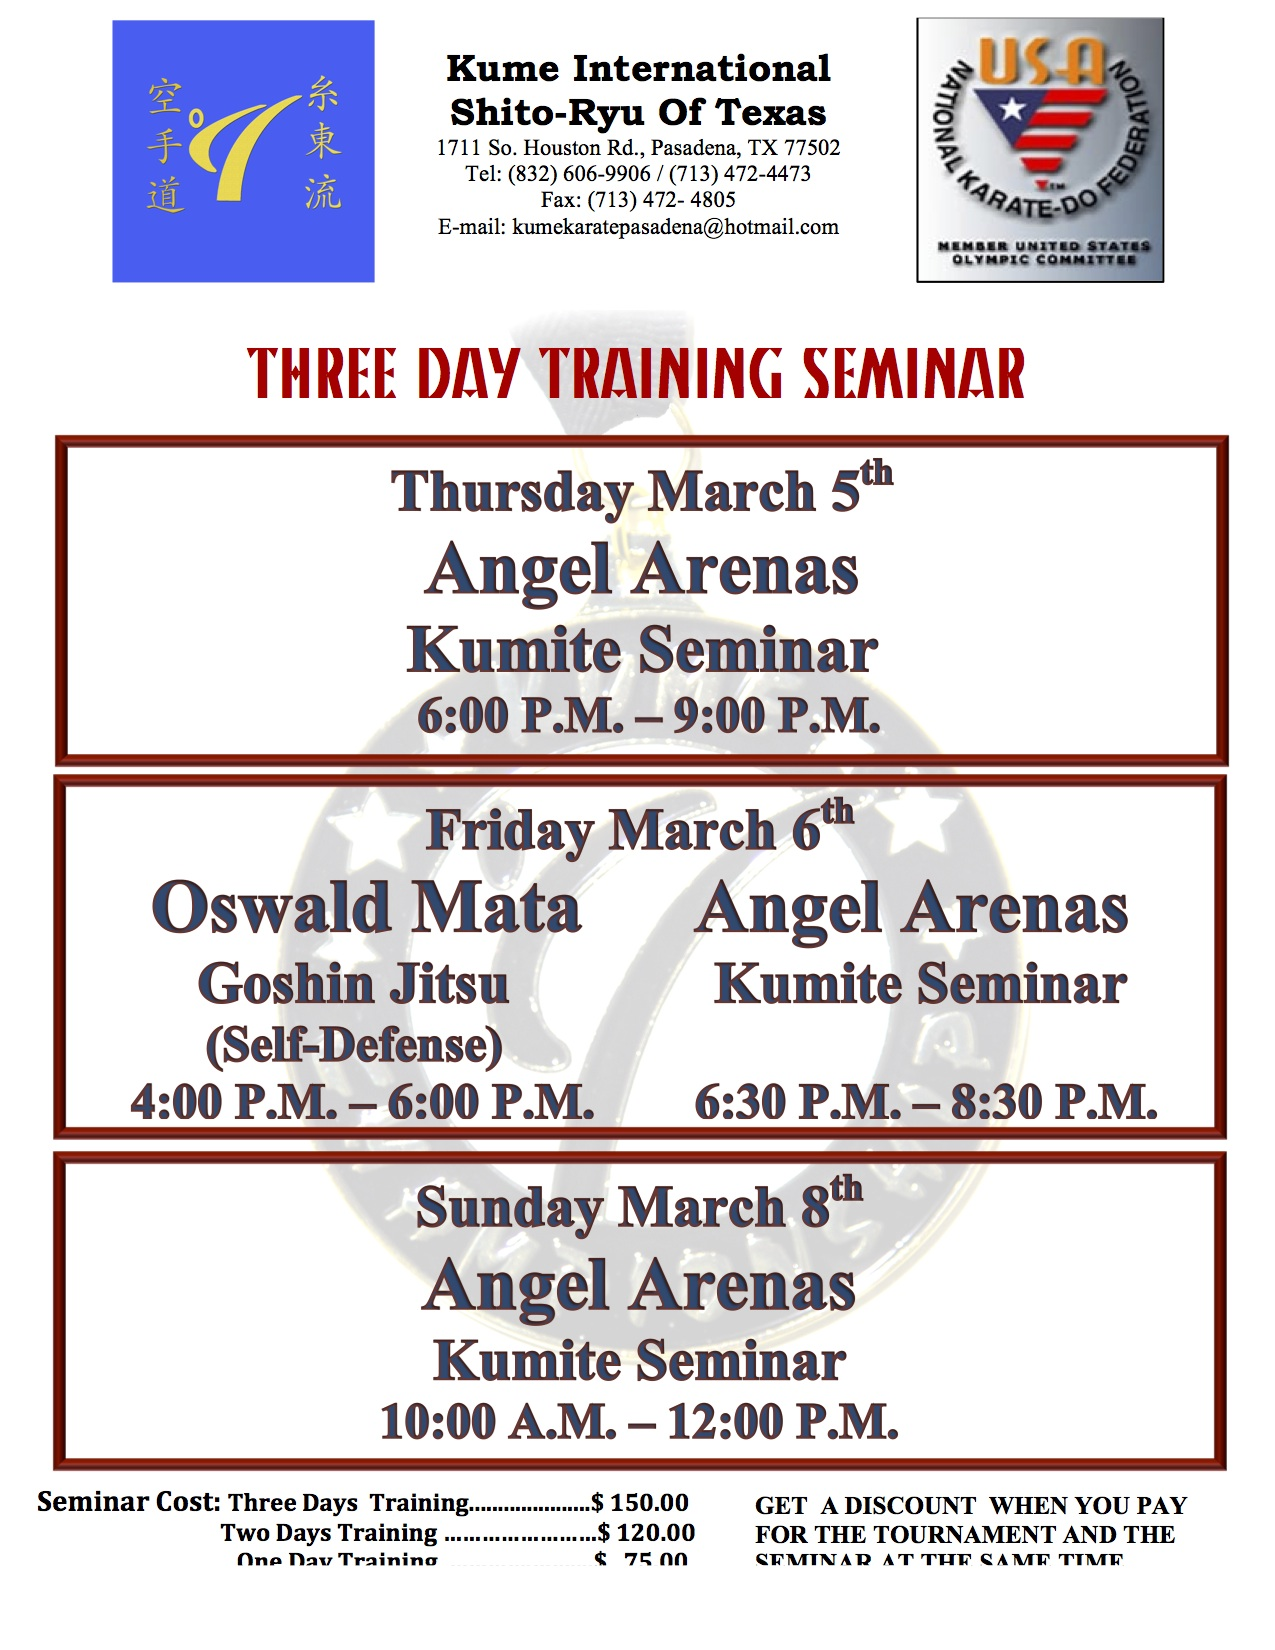 Tomodachi 2015 Seminars with Angel Arenas and Oswald Mata